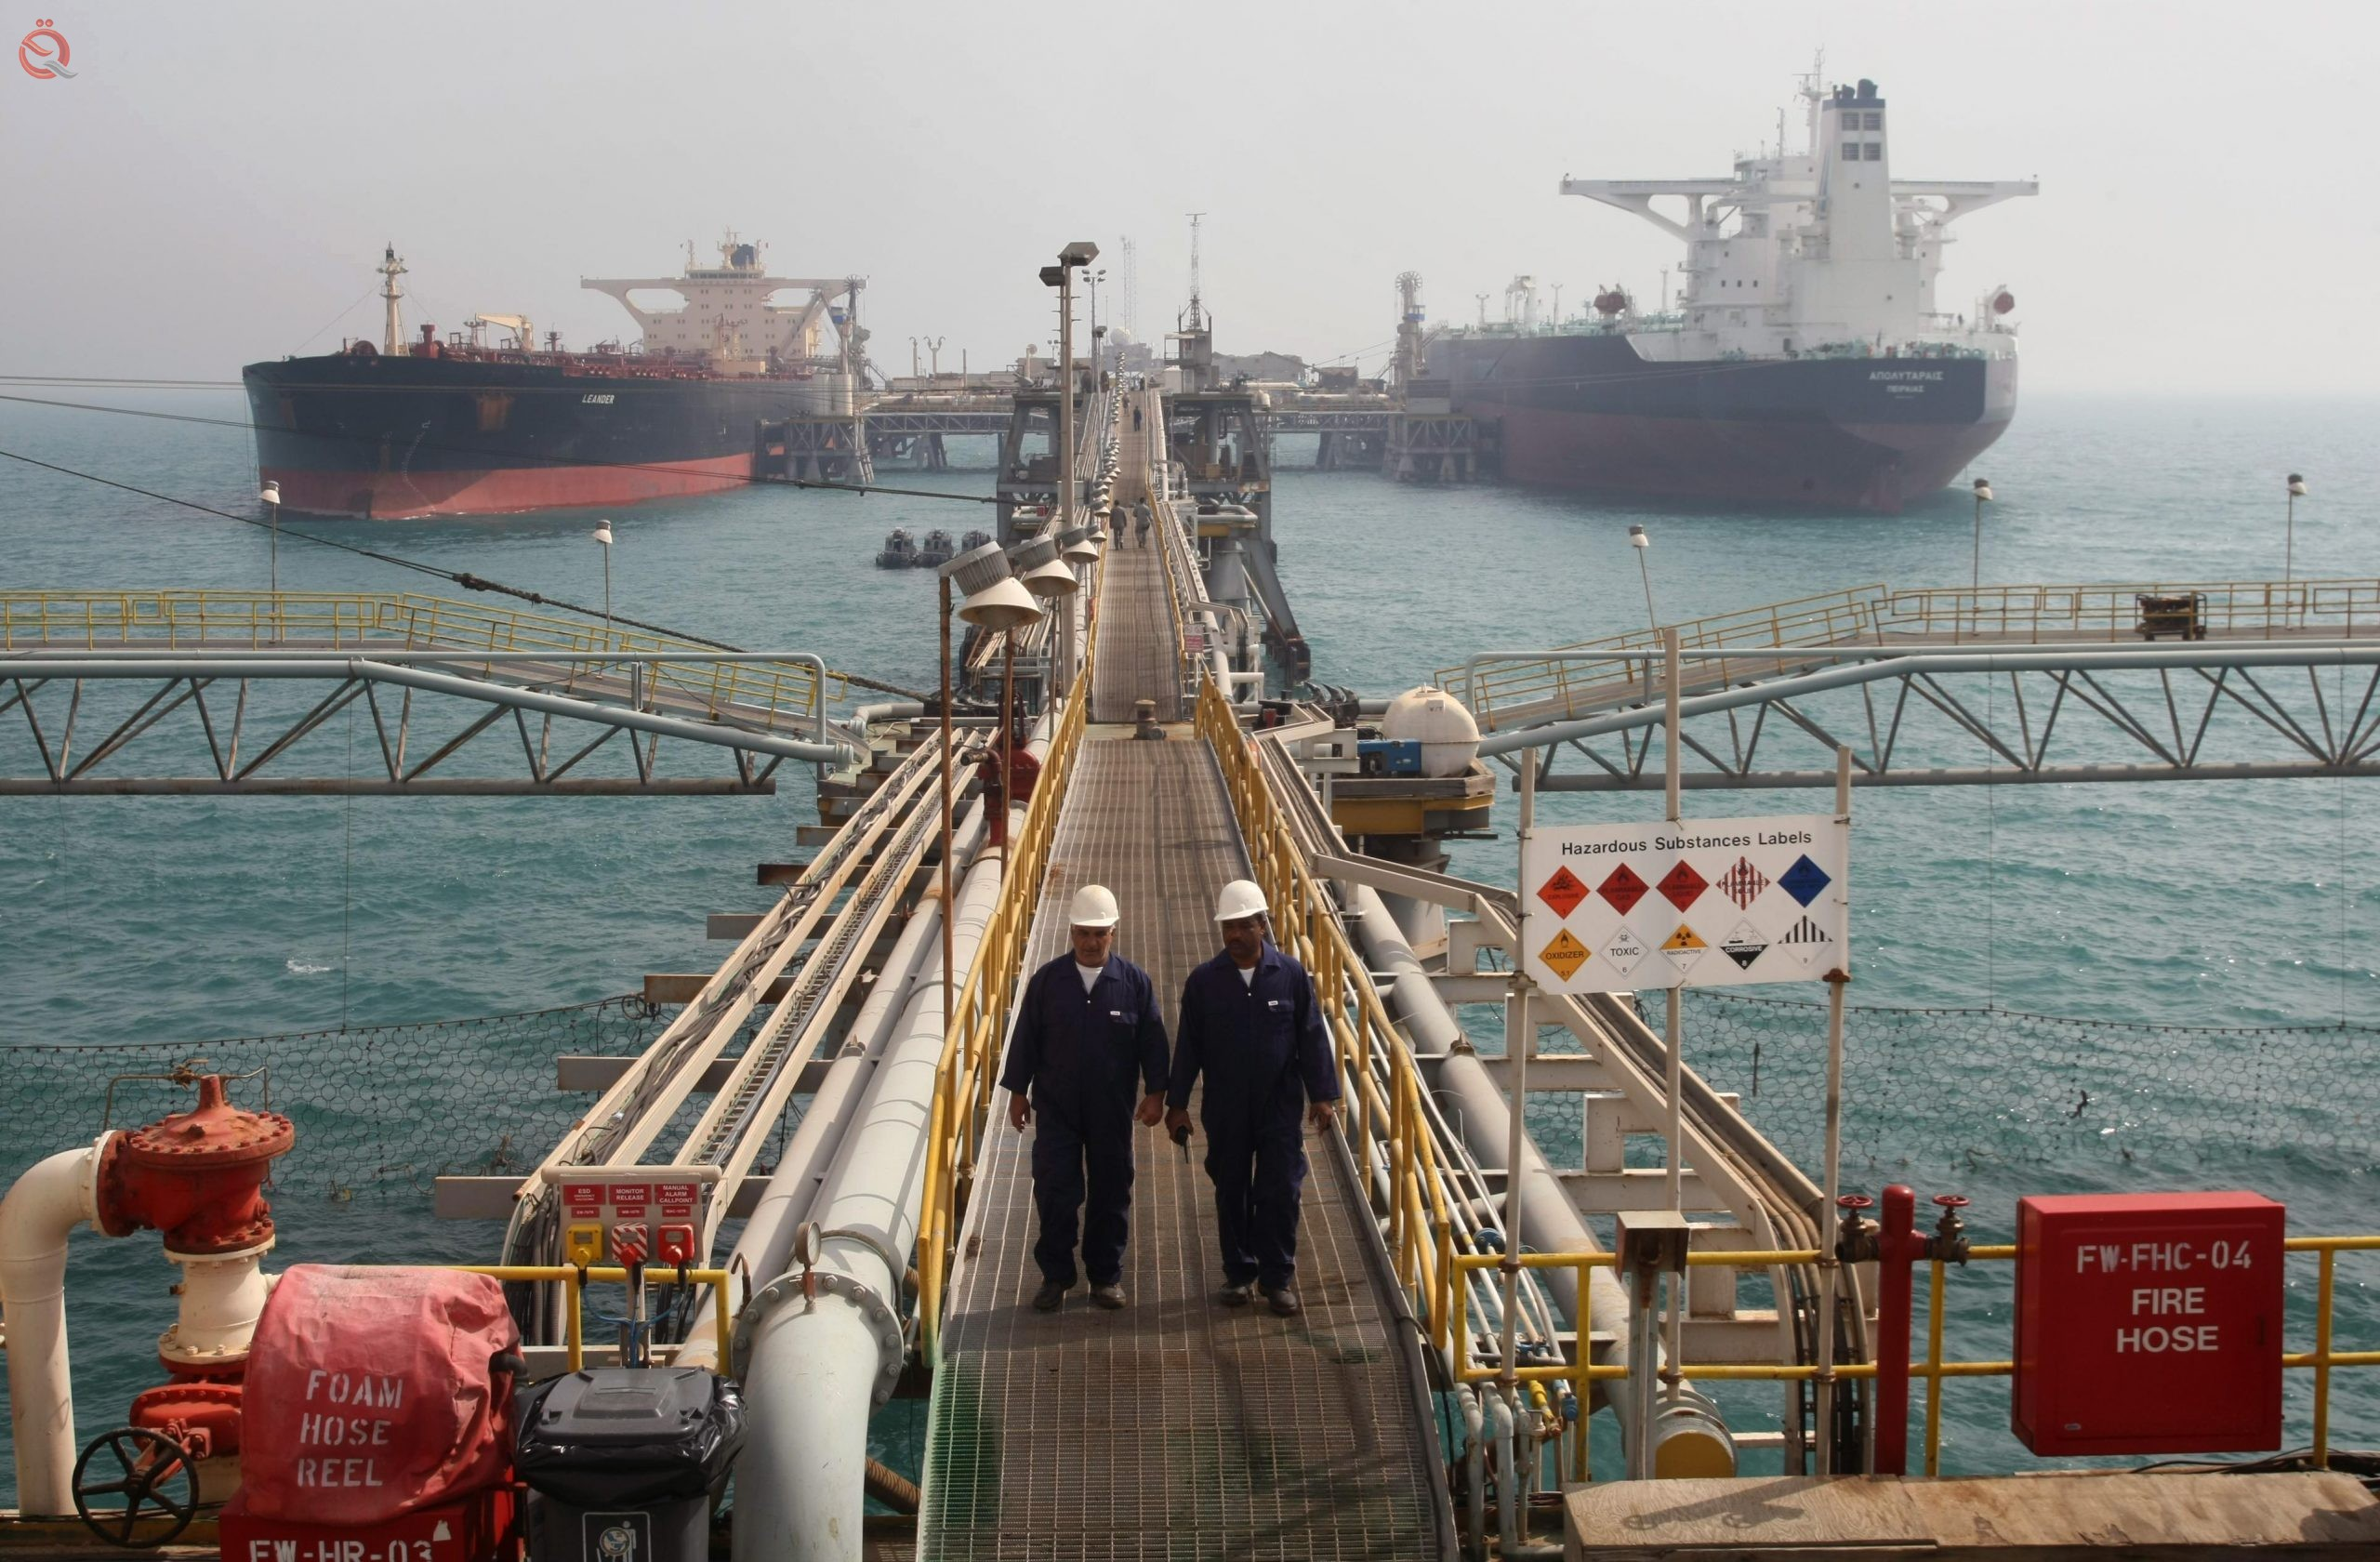 Somehow Iraq sells its oil for free one month of the year and only receives 11 months of revenue 24102